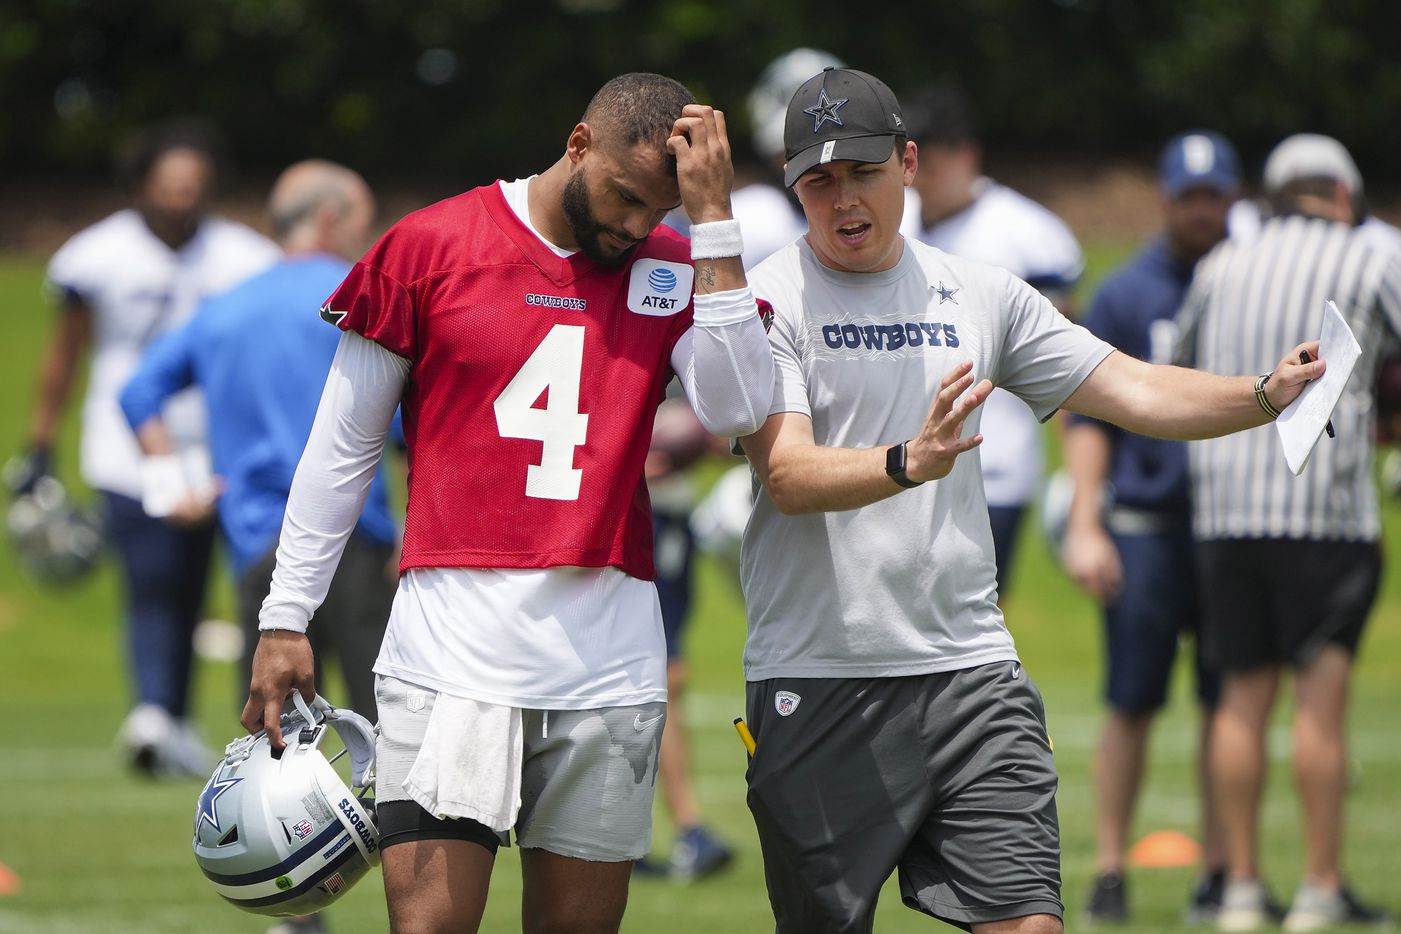 Dallas Cowboys quarterback Dak Prescott (4) scratches his head talks with offensive coordinator Kellen Moore during a minicamp practice at The Star on Tuesday, June 8, 2021, in Frisco. (Smiley N. Pool/The Dallas Morning News)